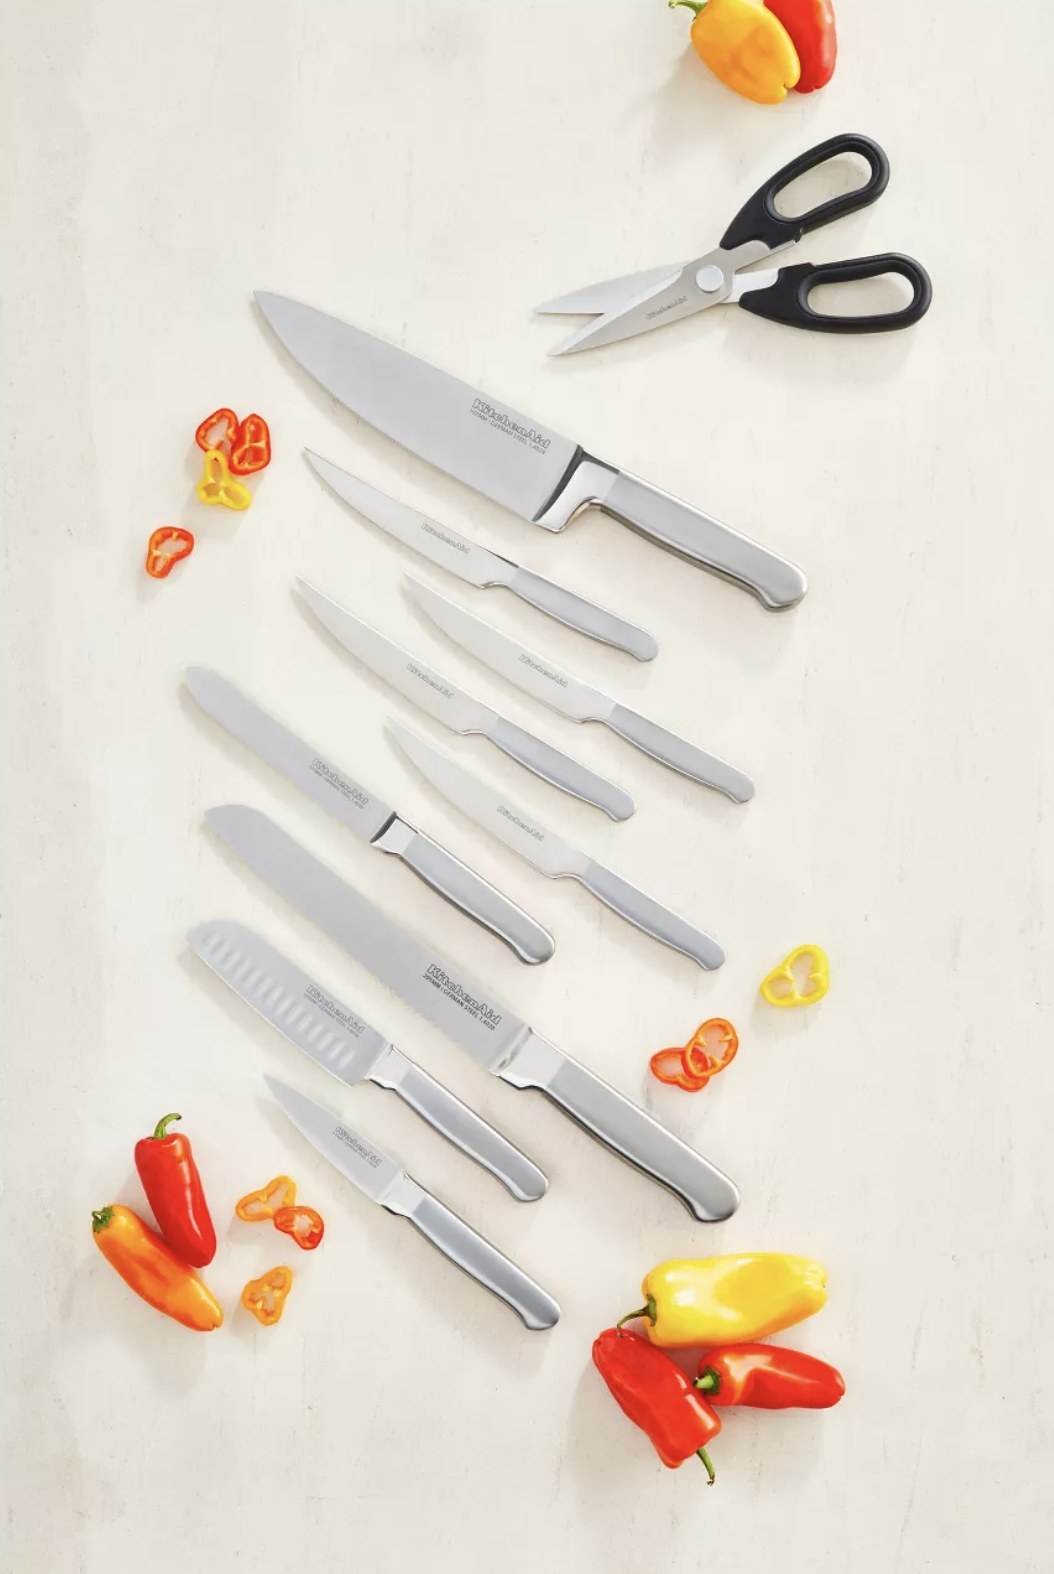 Ten pieces of metallic cutlery including knives and a pair of scissors